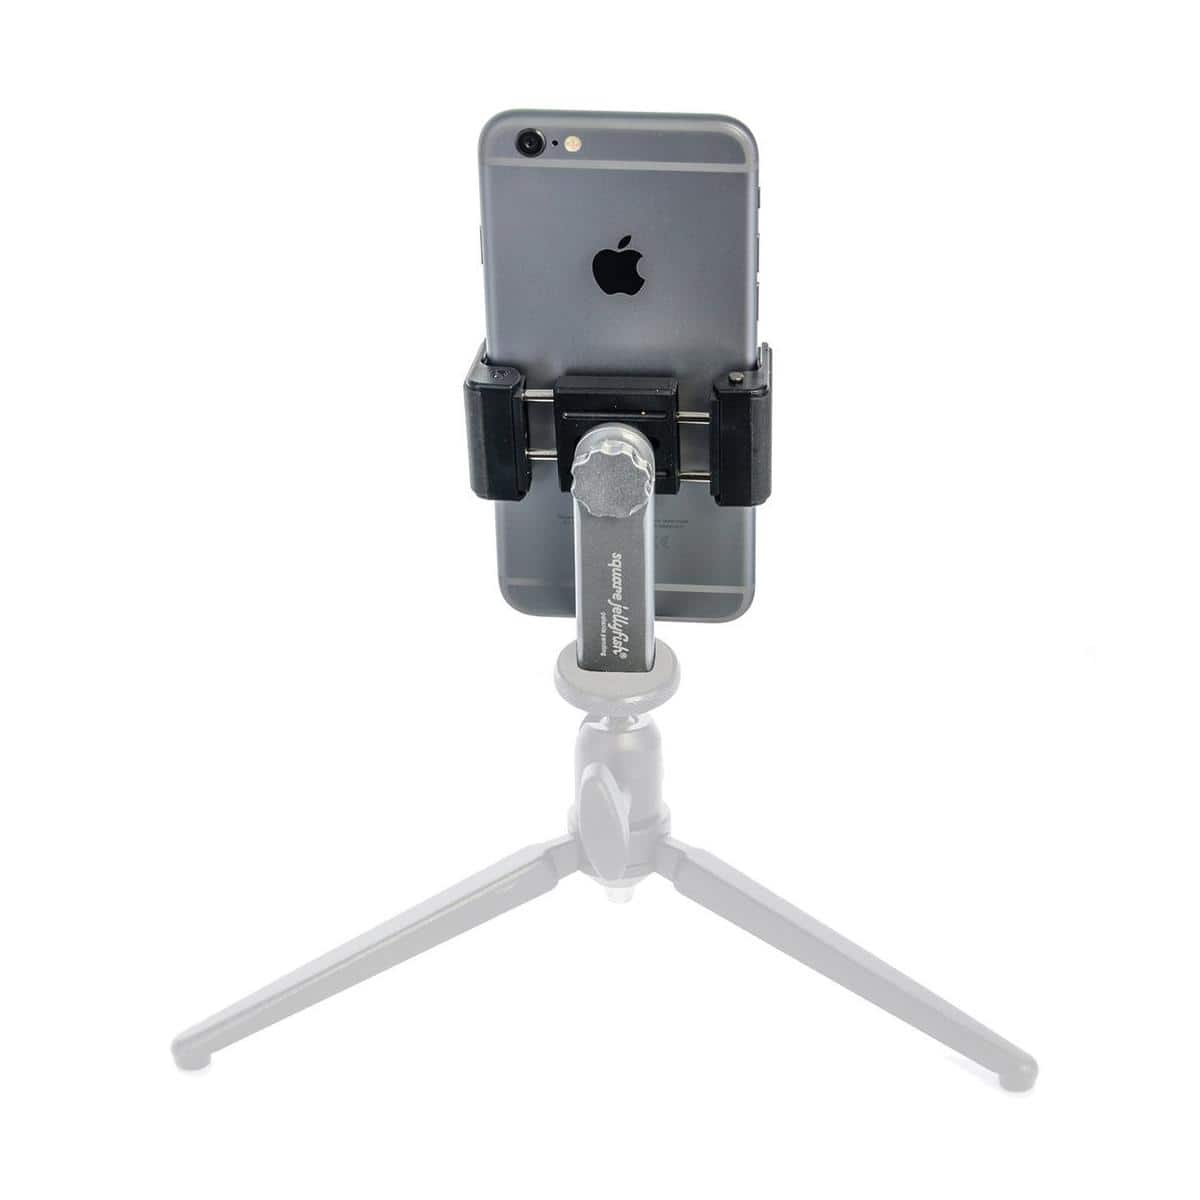 Square Jellyfish Metal Spring Tripod Mount for Smartphones $12 + free s/h